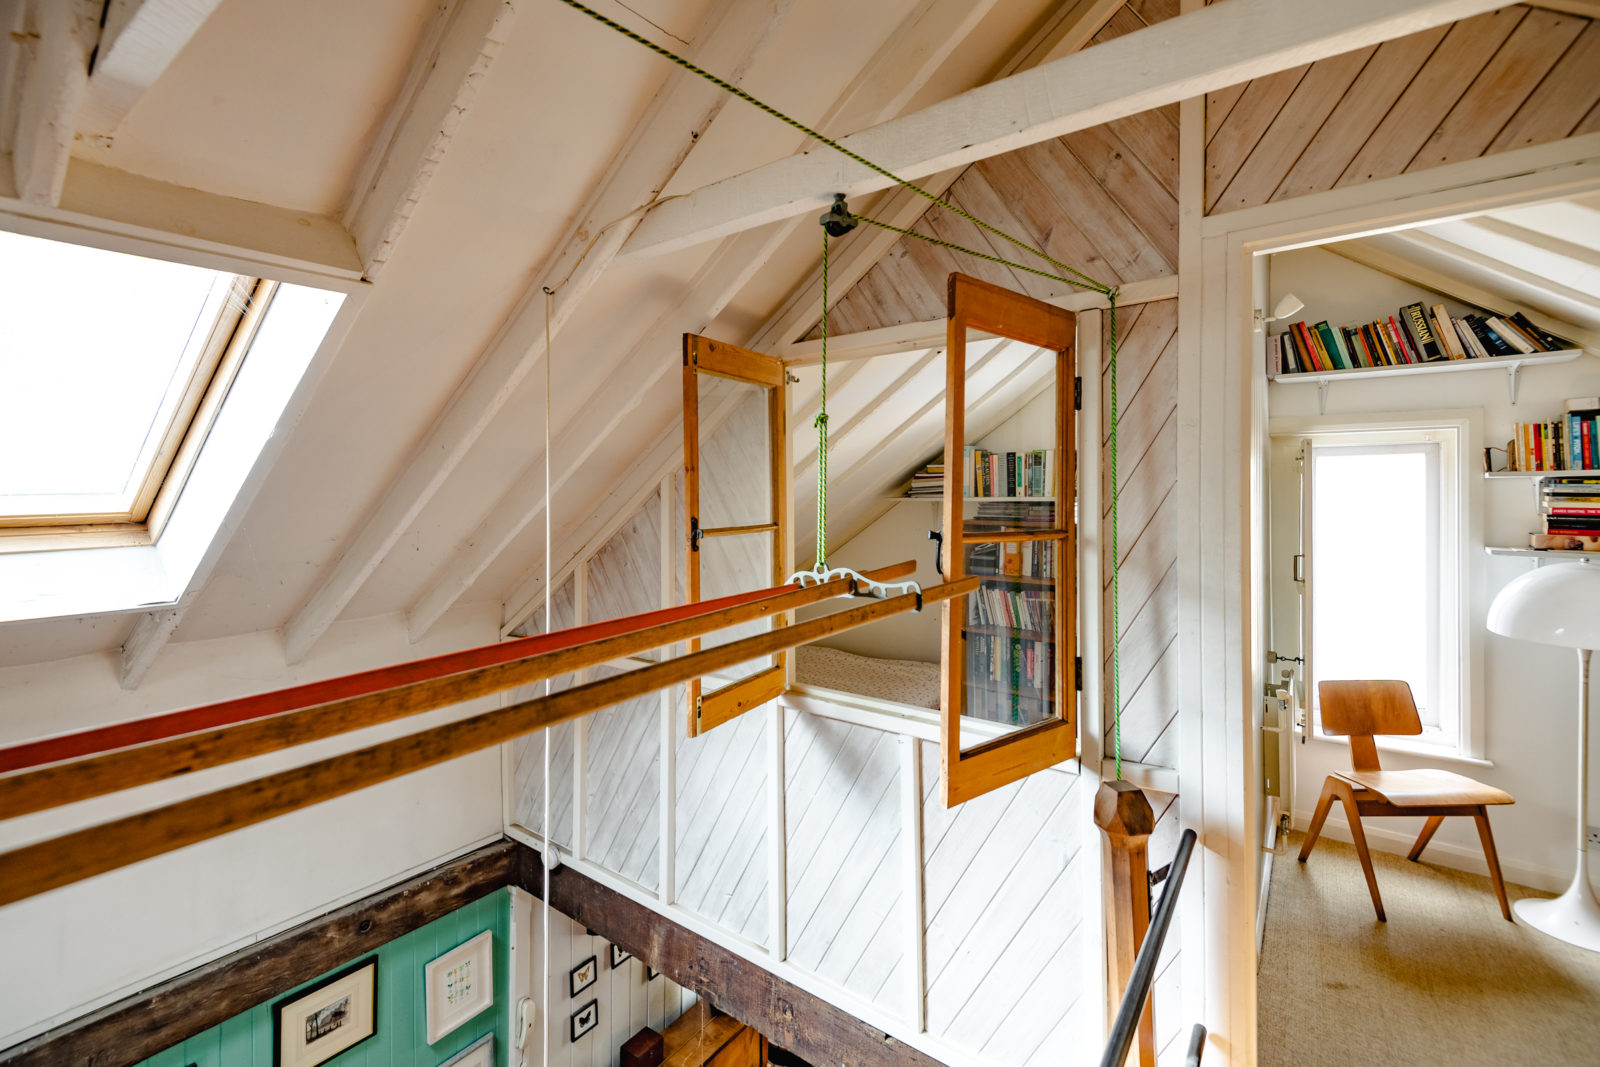 The two-bedroom home has been very lightly converted, changing little of its character despite its change of use